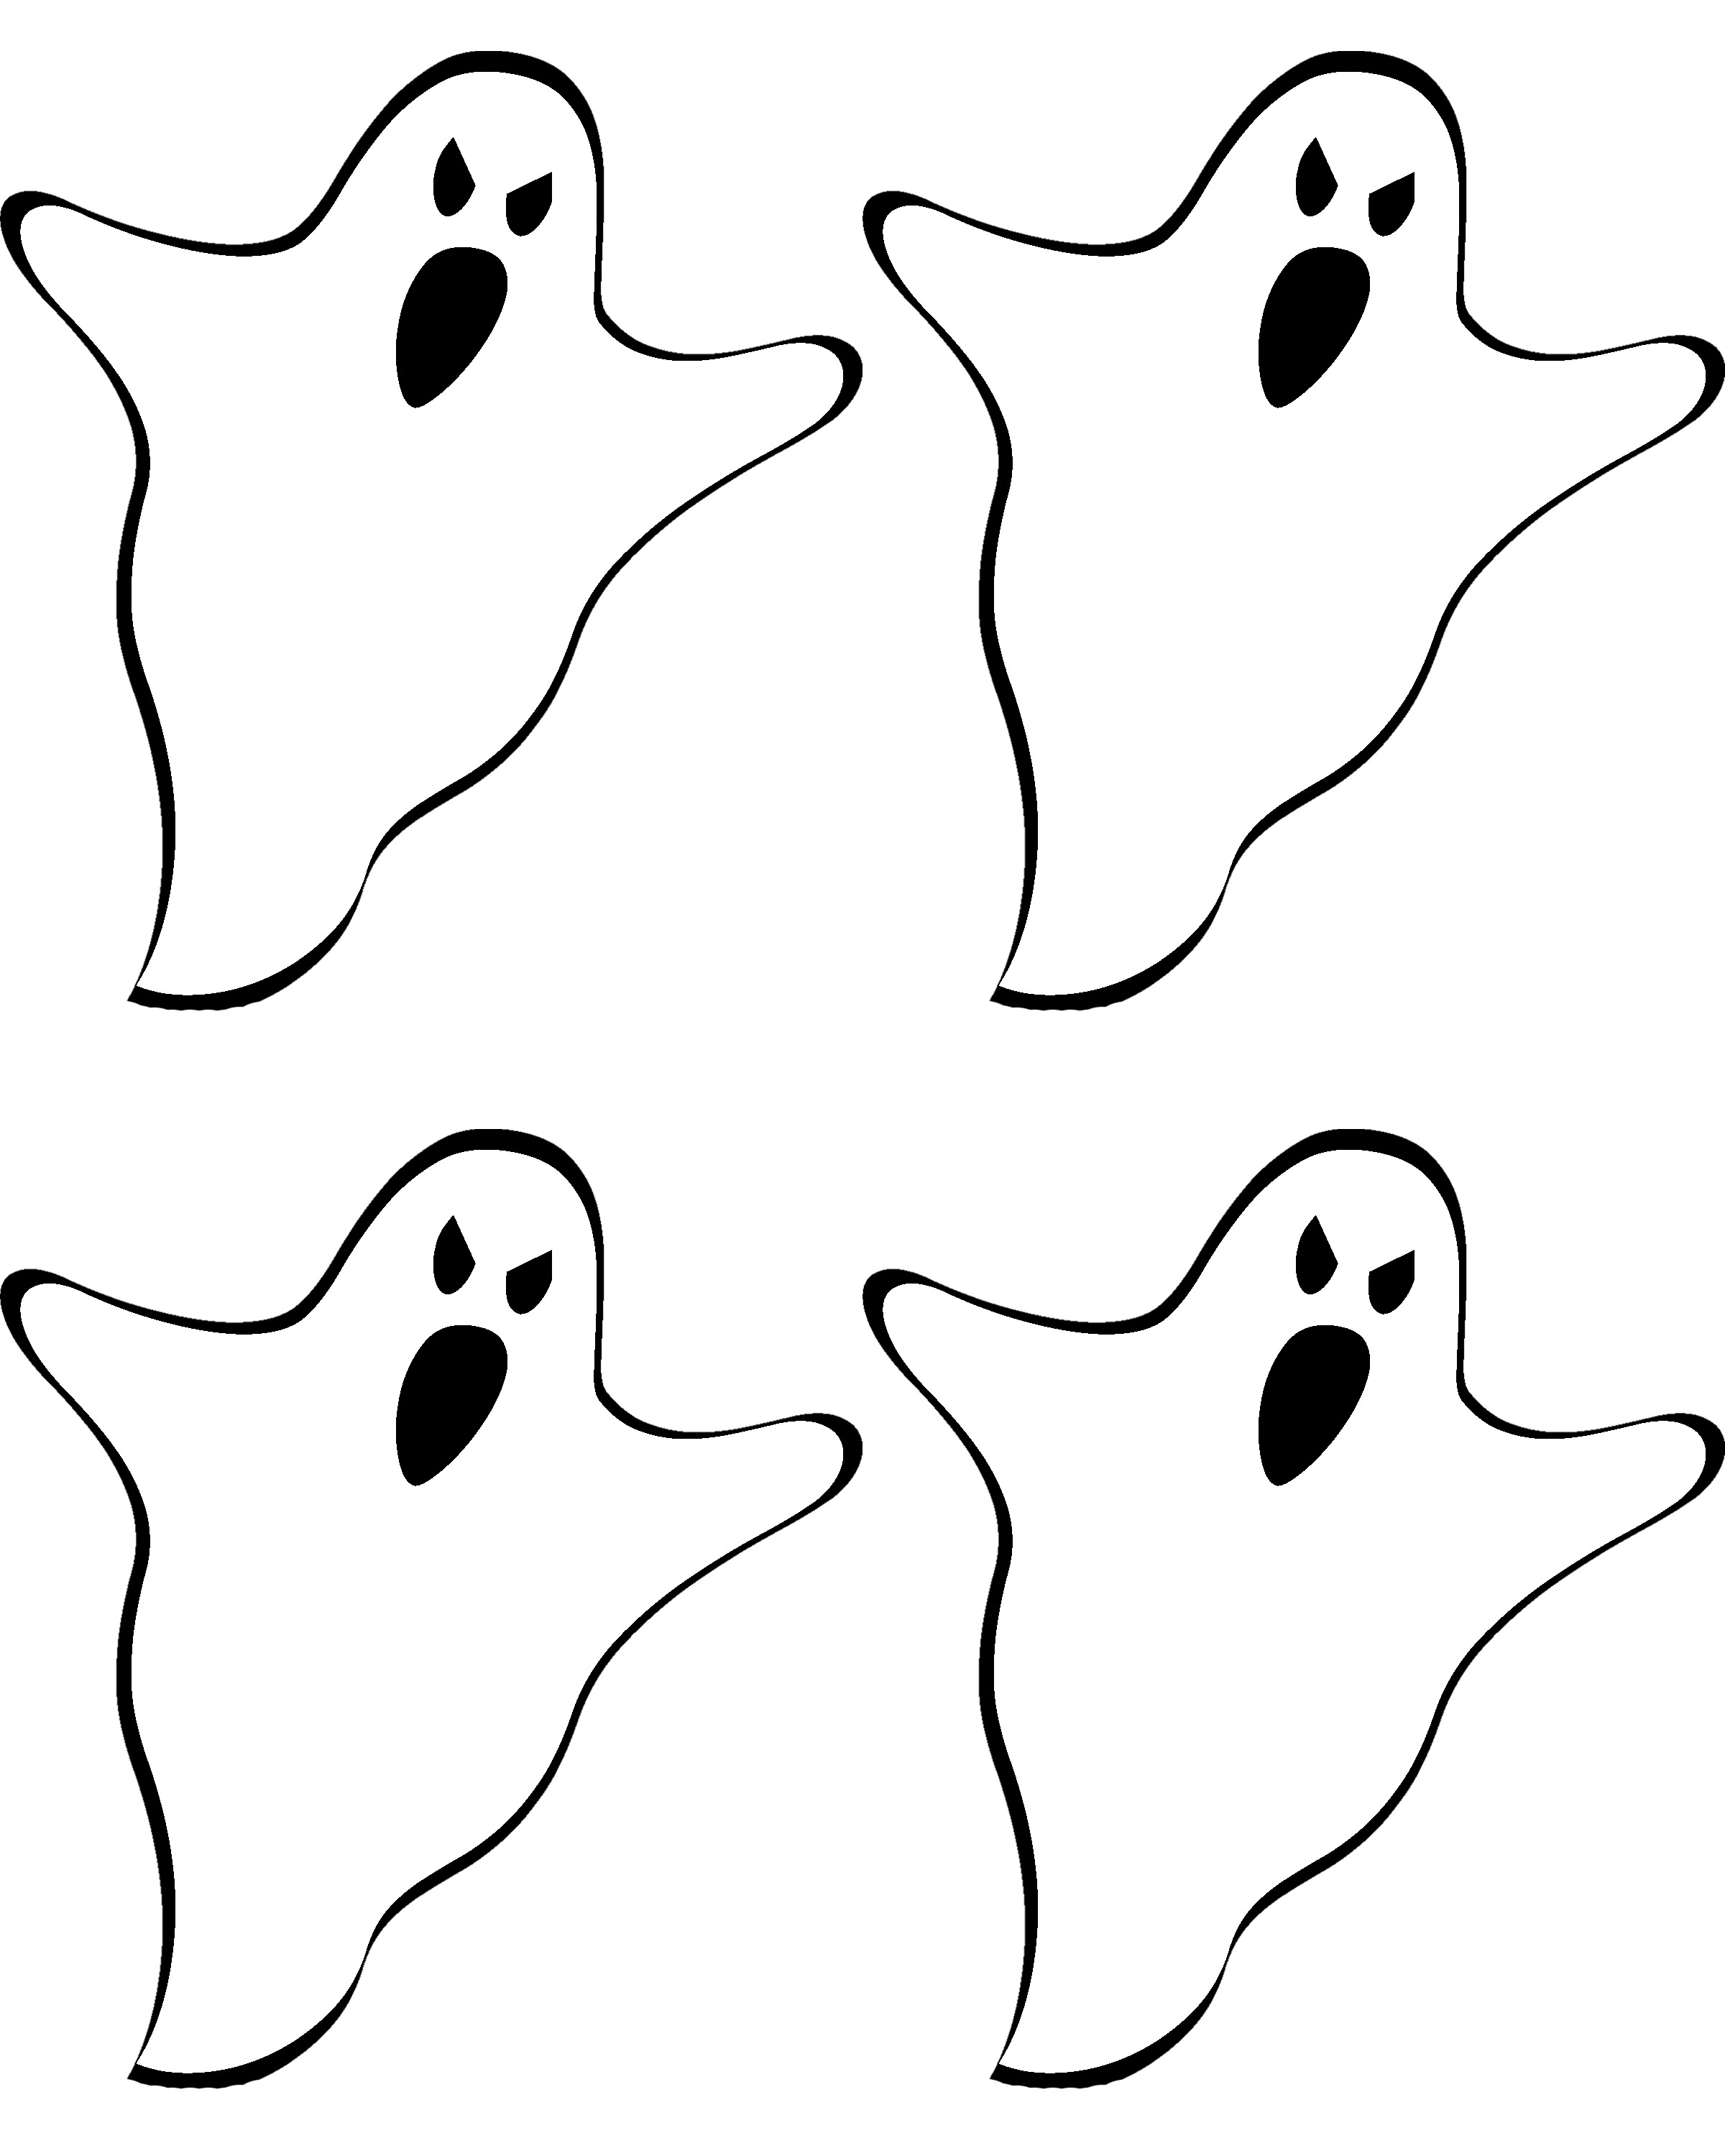 Ambitious image with printable ghost